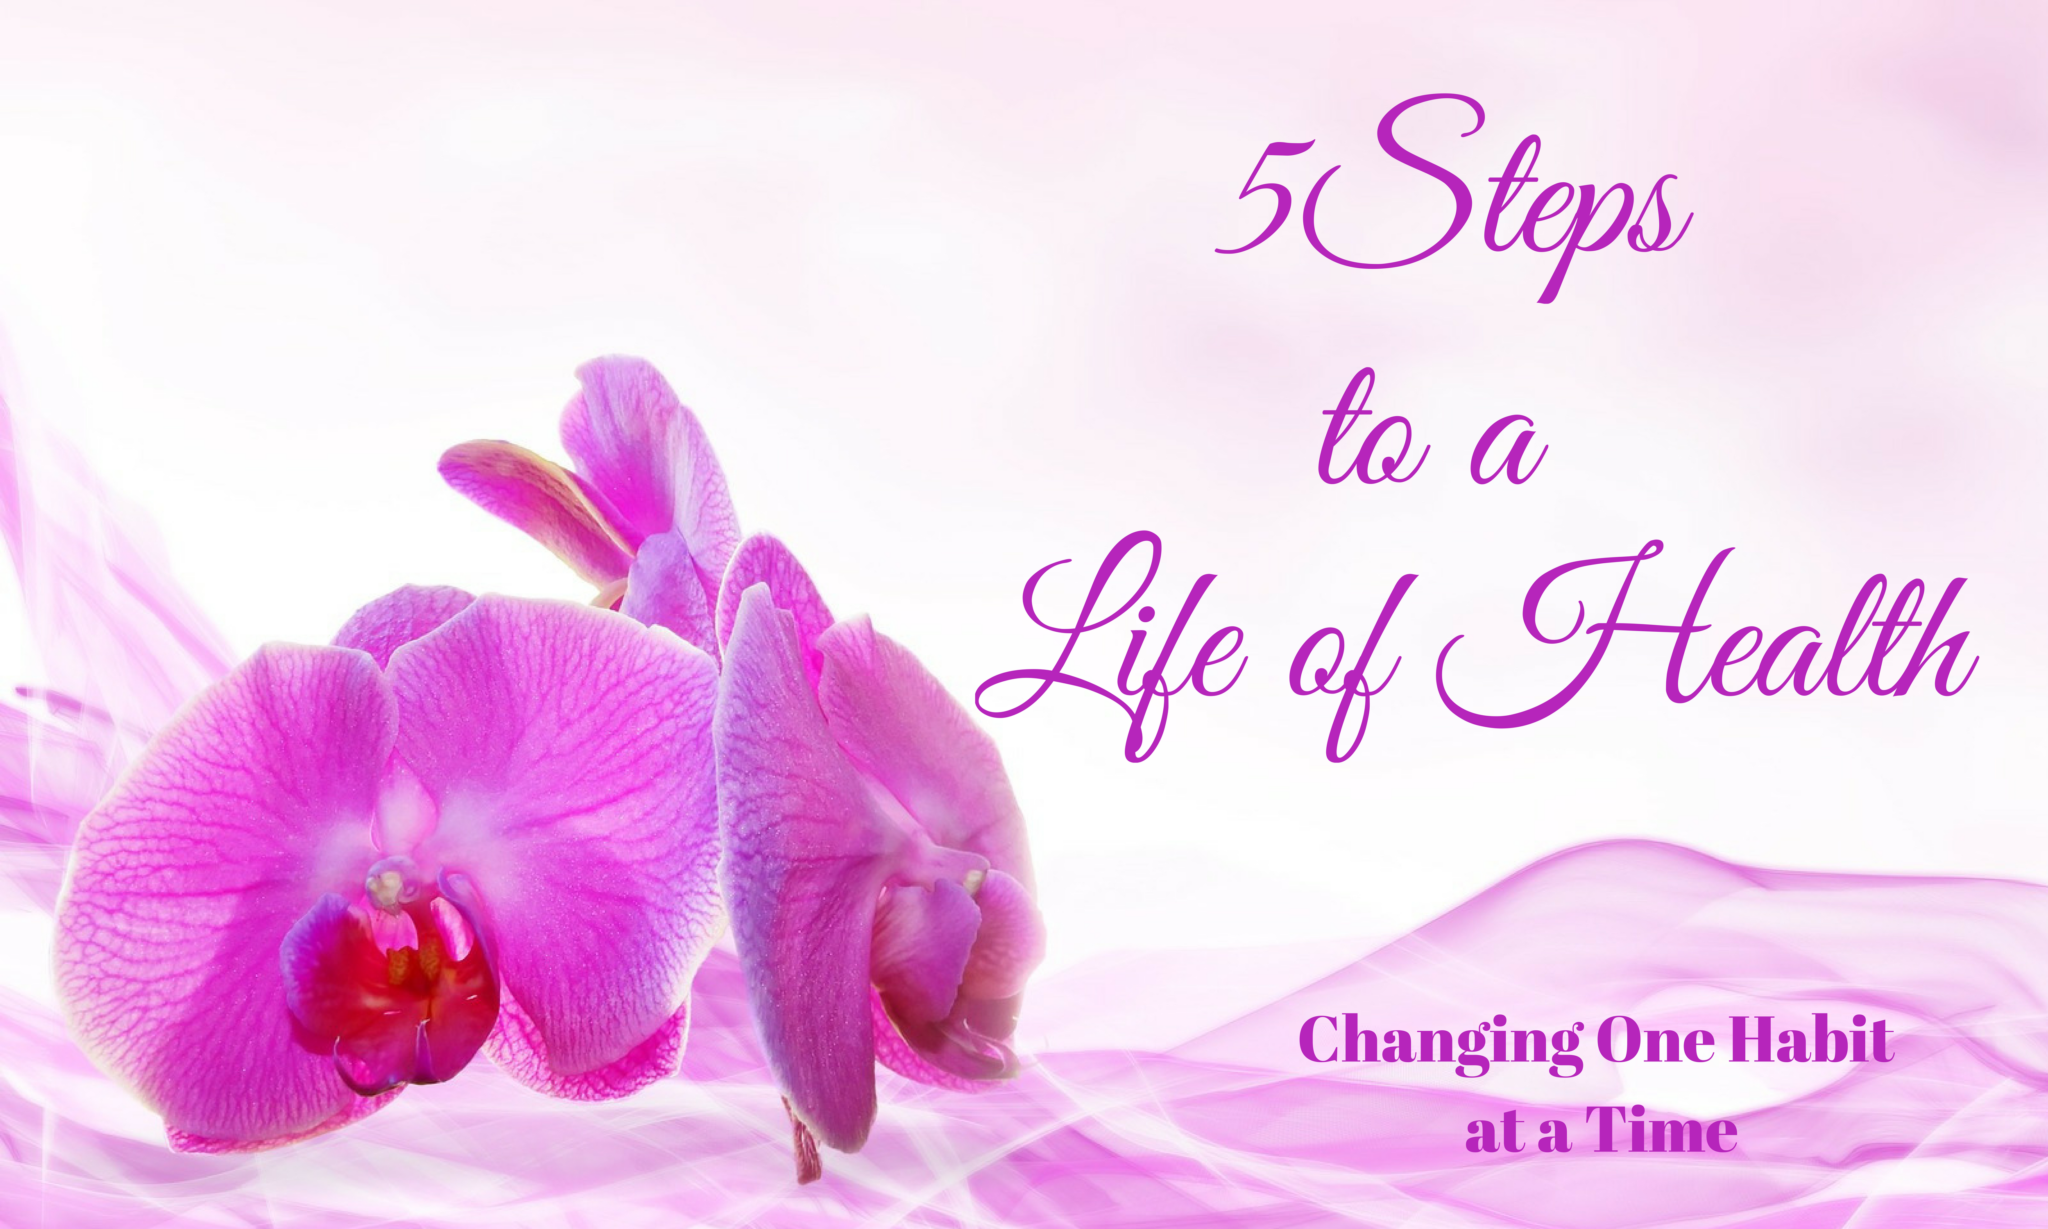 5 Steps to a Healthy Life